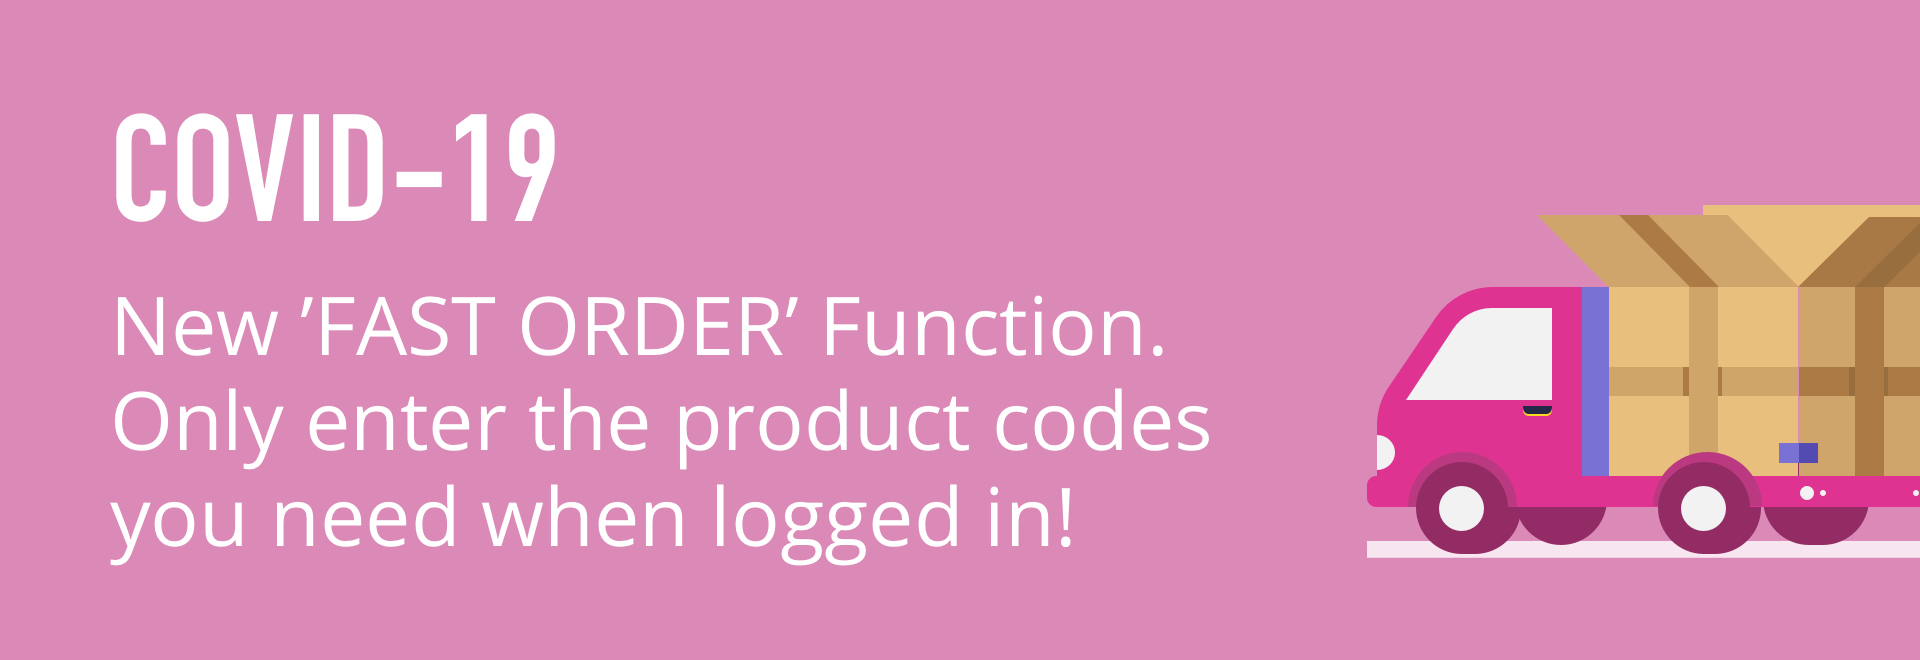 COVID-19. New 'fast order' function. Only enter the product codes you need when logged in!